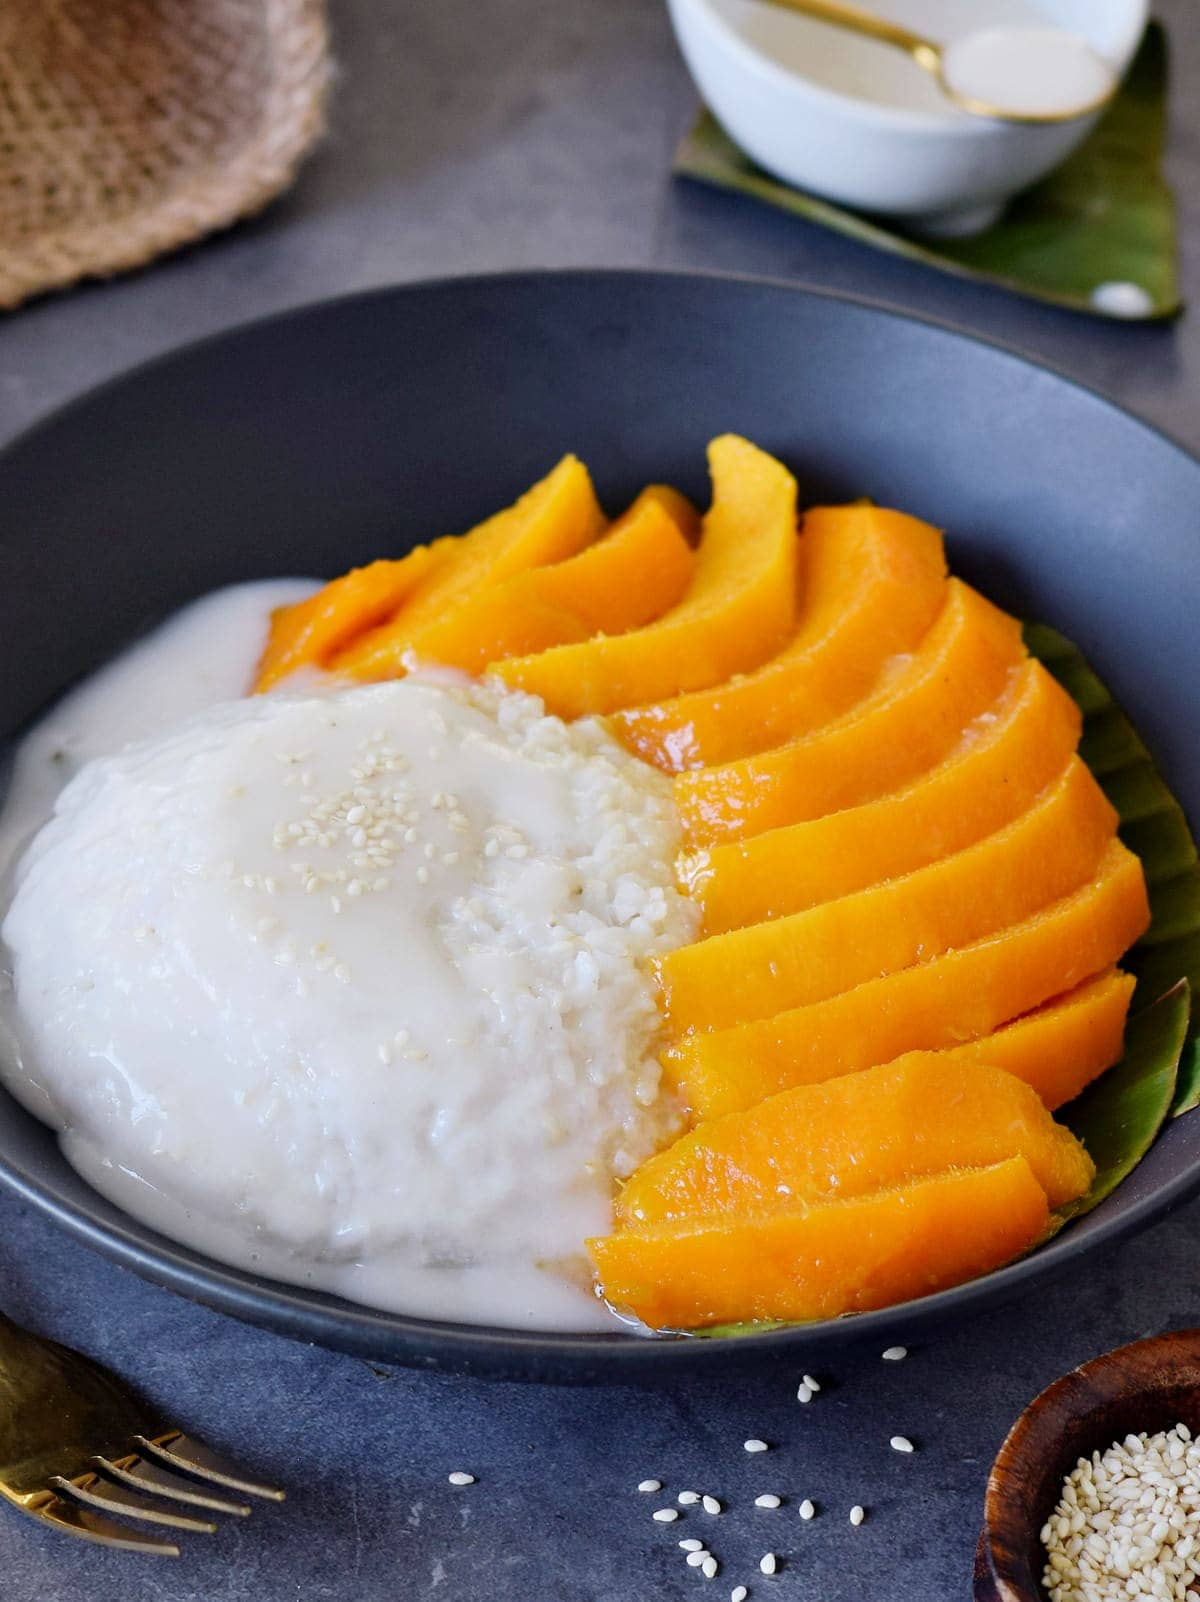 Close-up of Thai dessert with sliced mangoes in black bowl